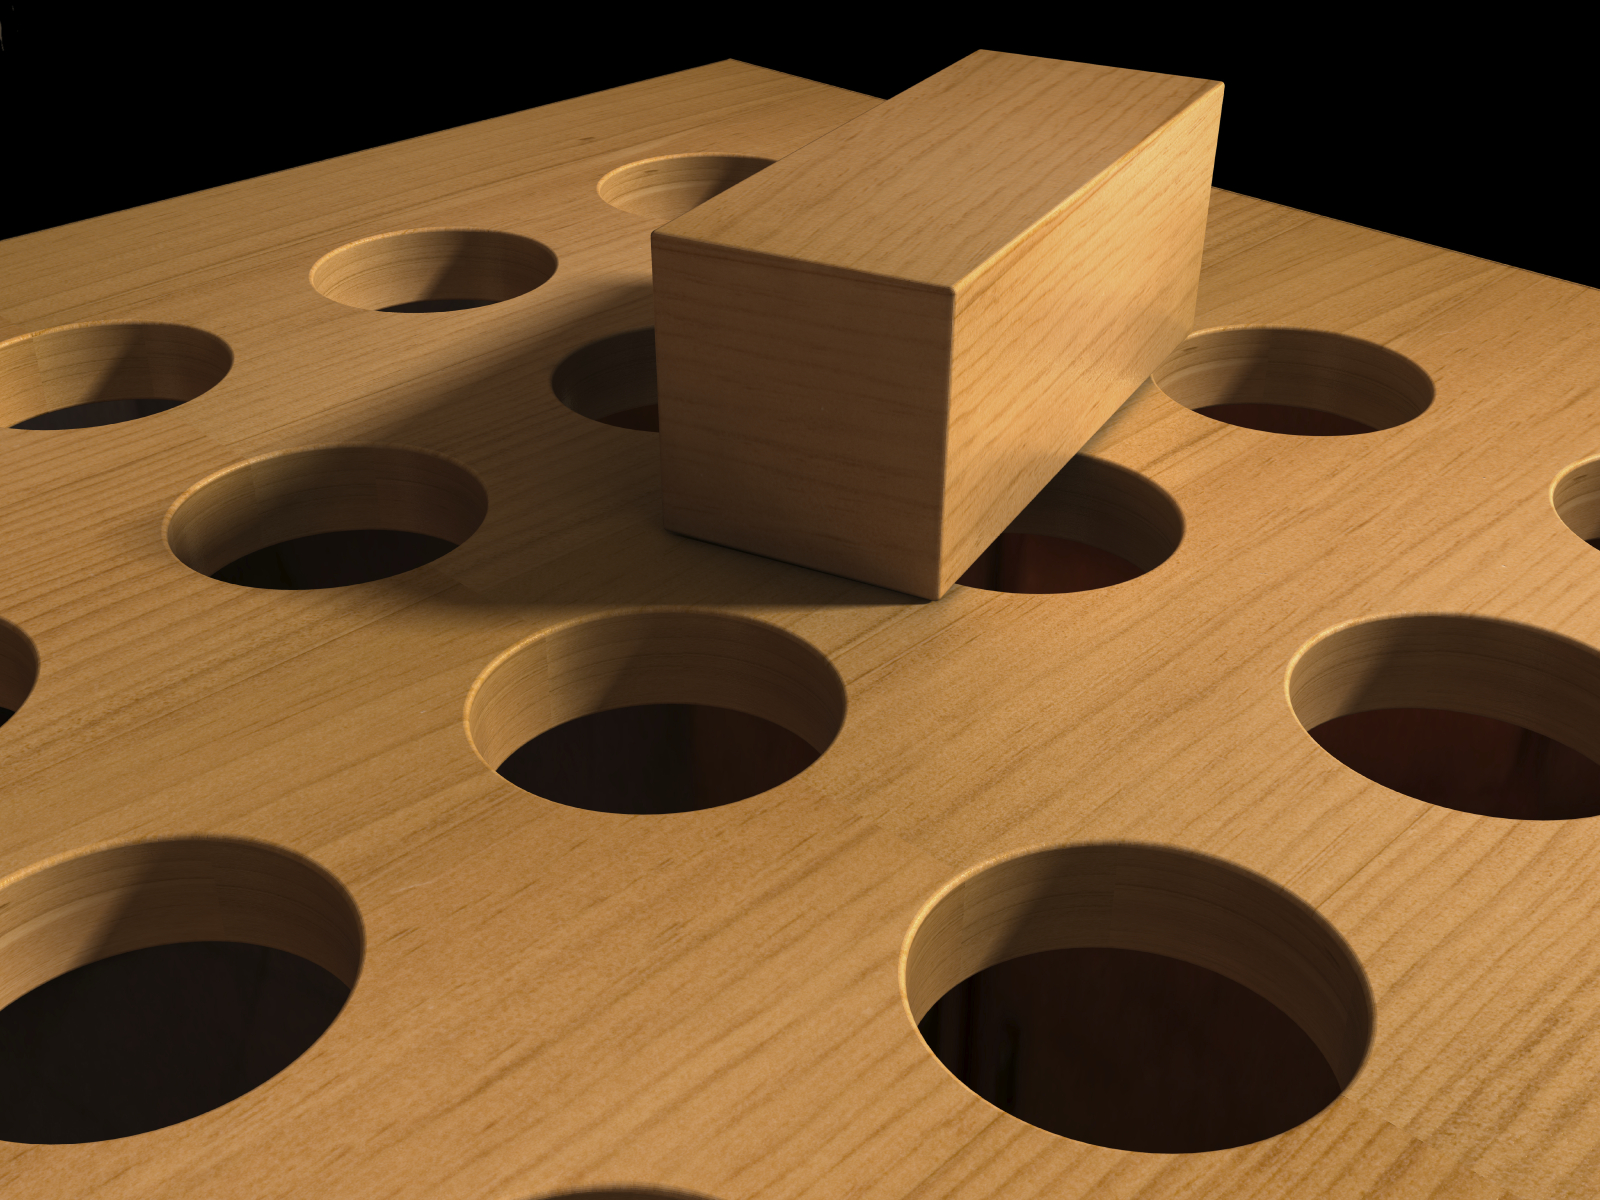 """Learning How to put the Square Peg into a Round Hole"""" 